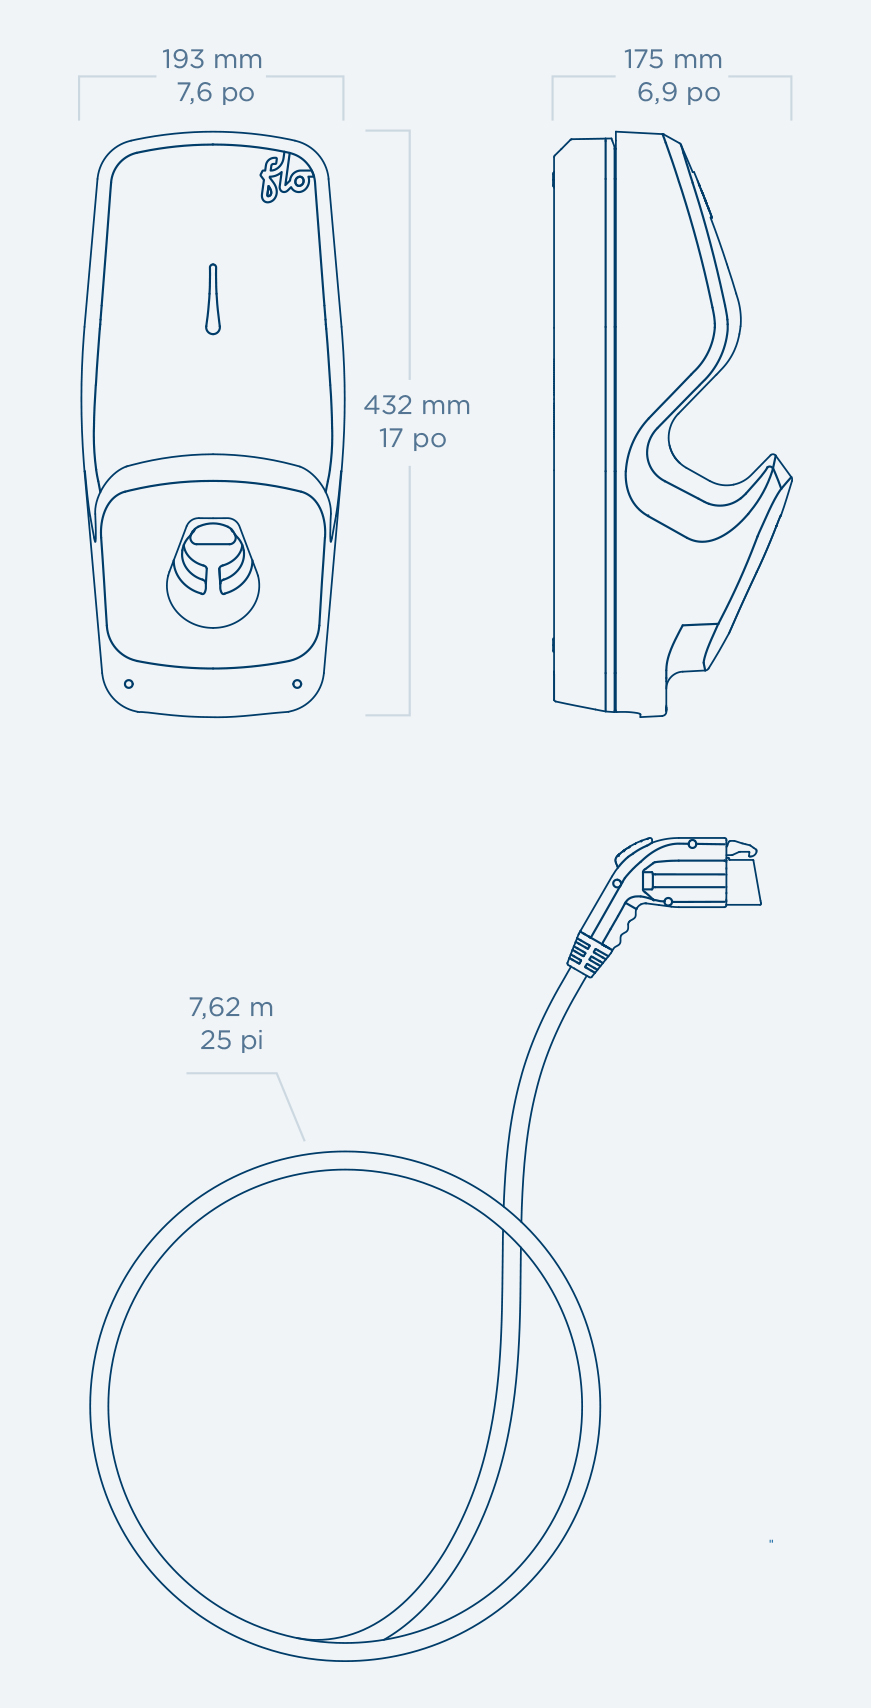 Specification Flo G5